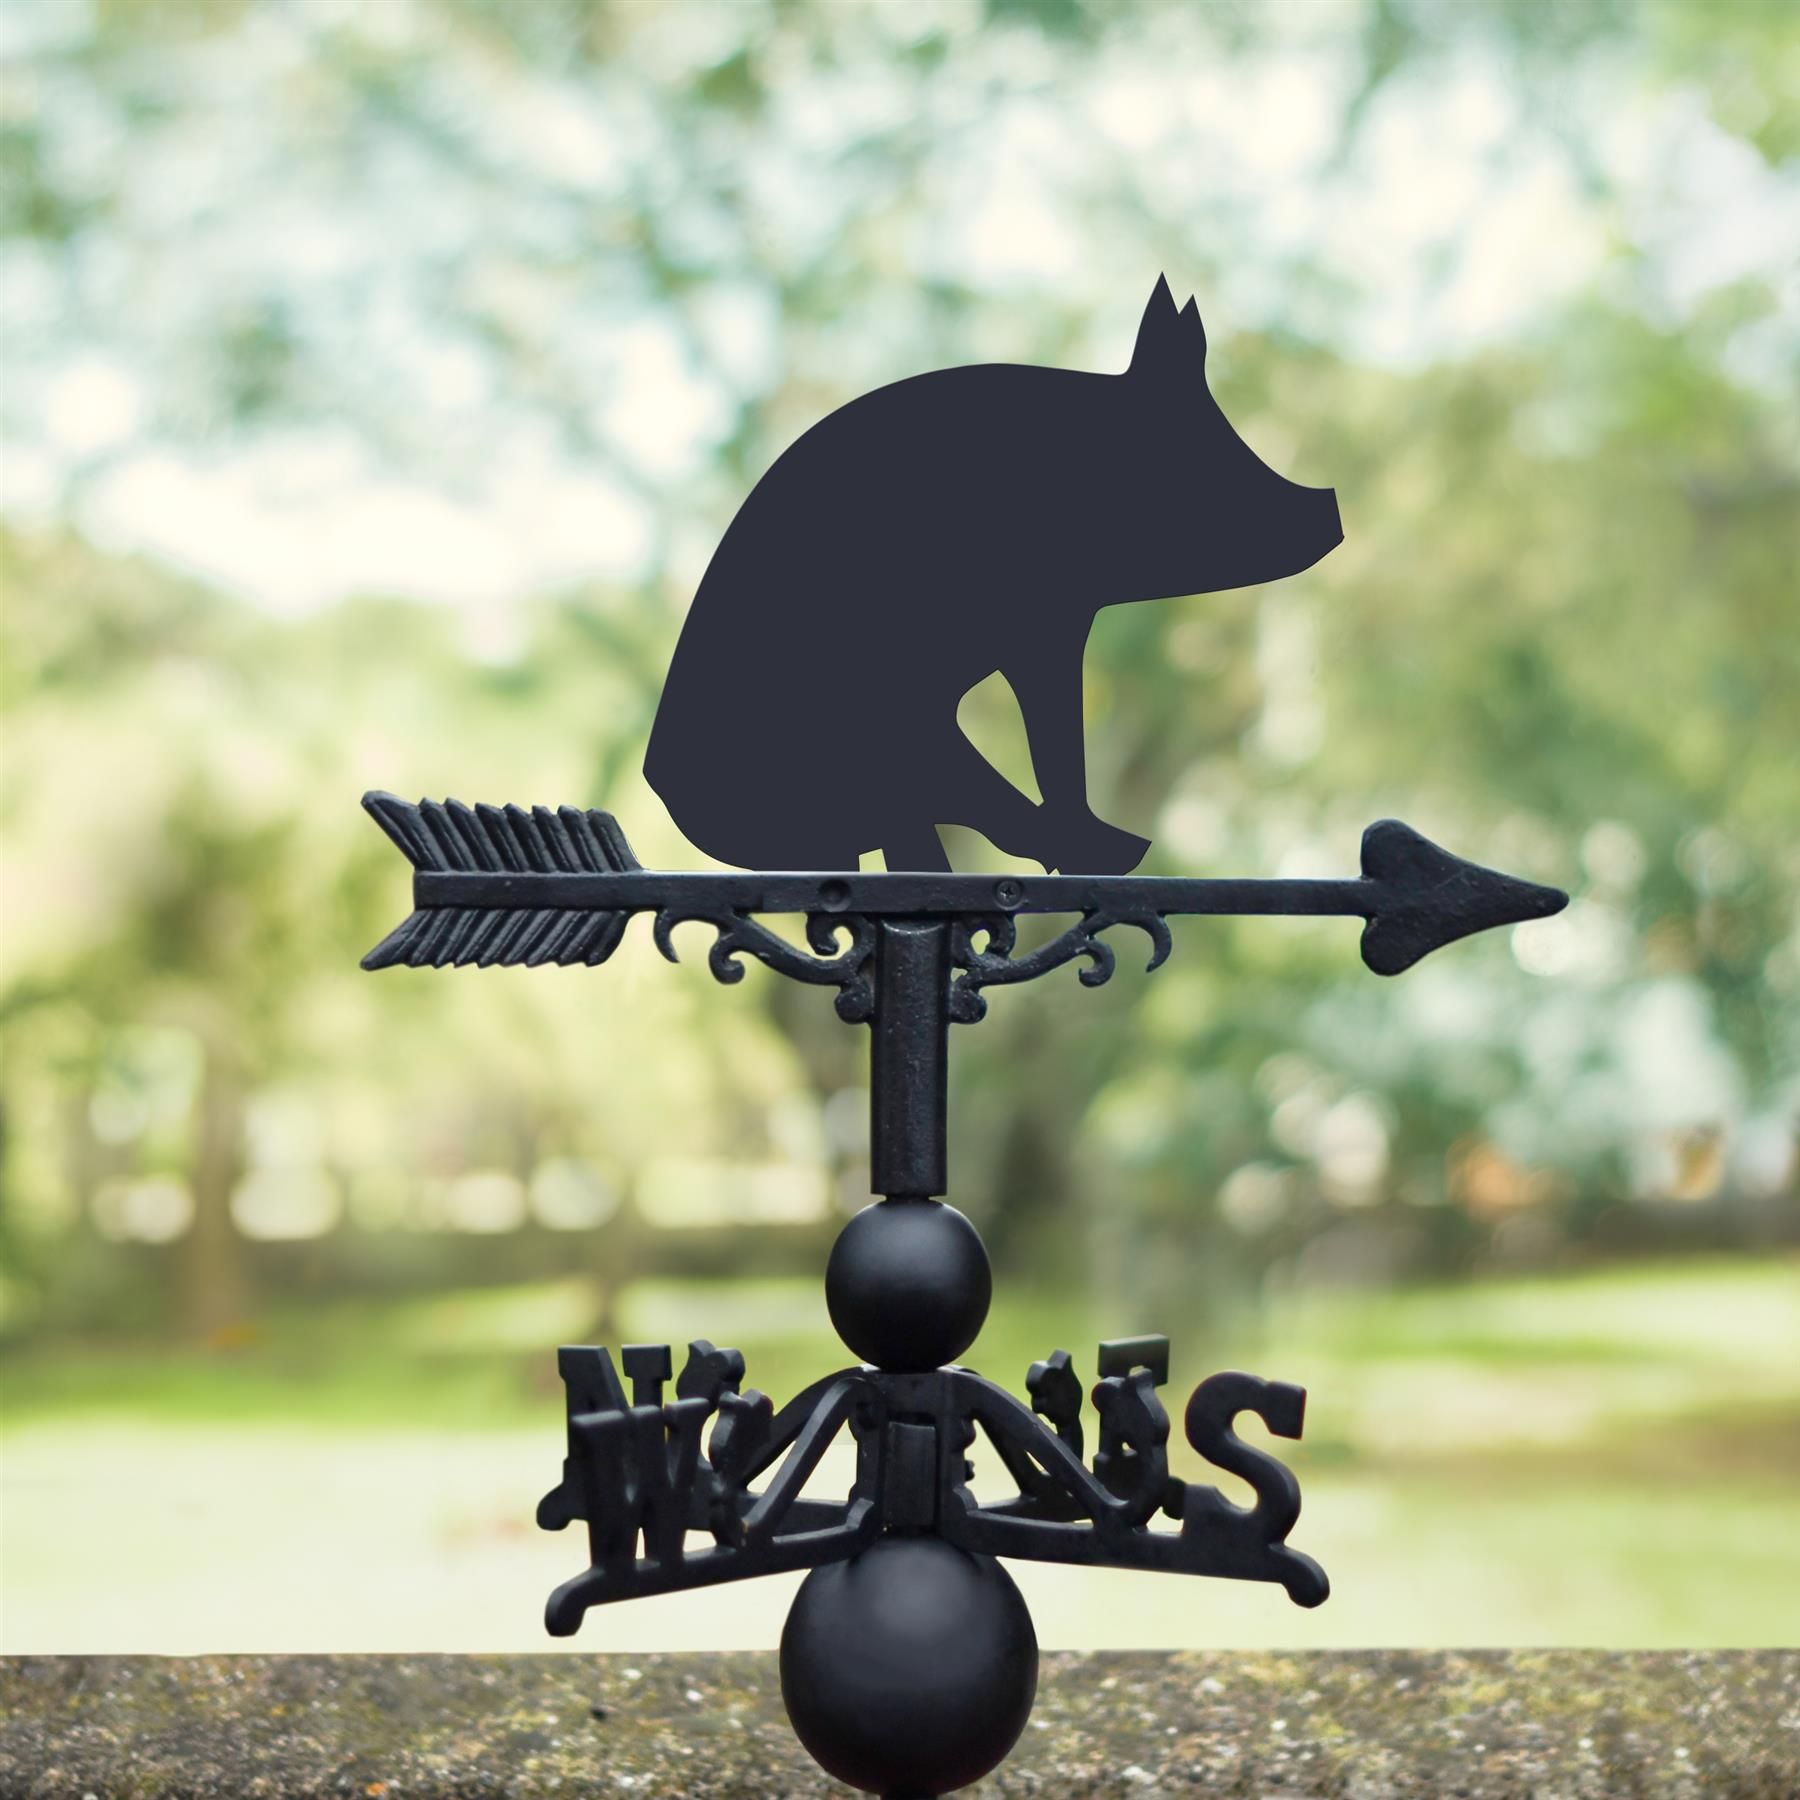 Montague Metal Products 32-Inch Weathervane with Color Pig Ornament